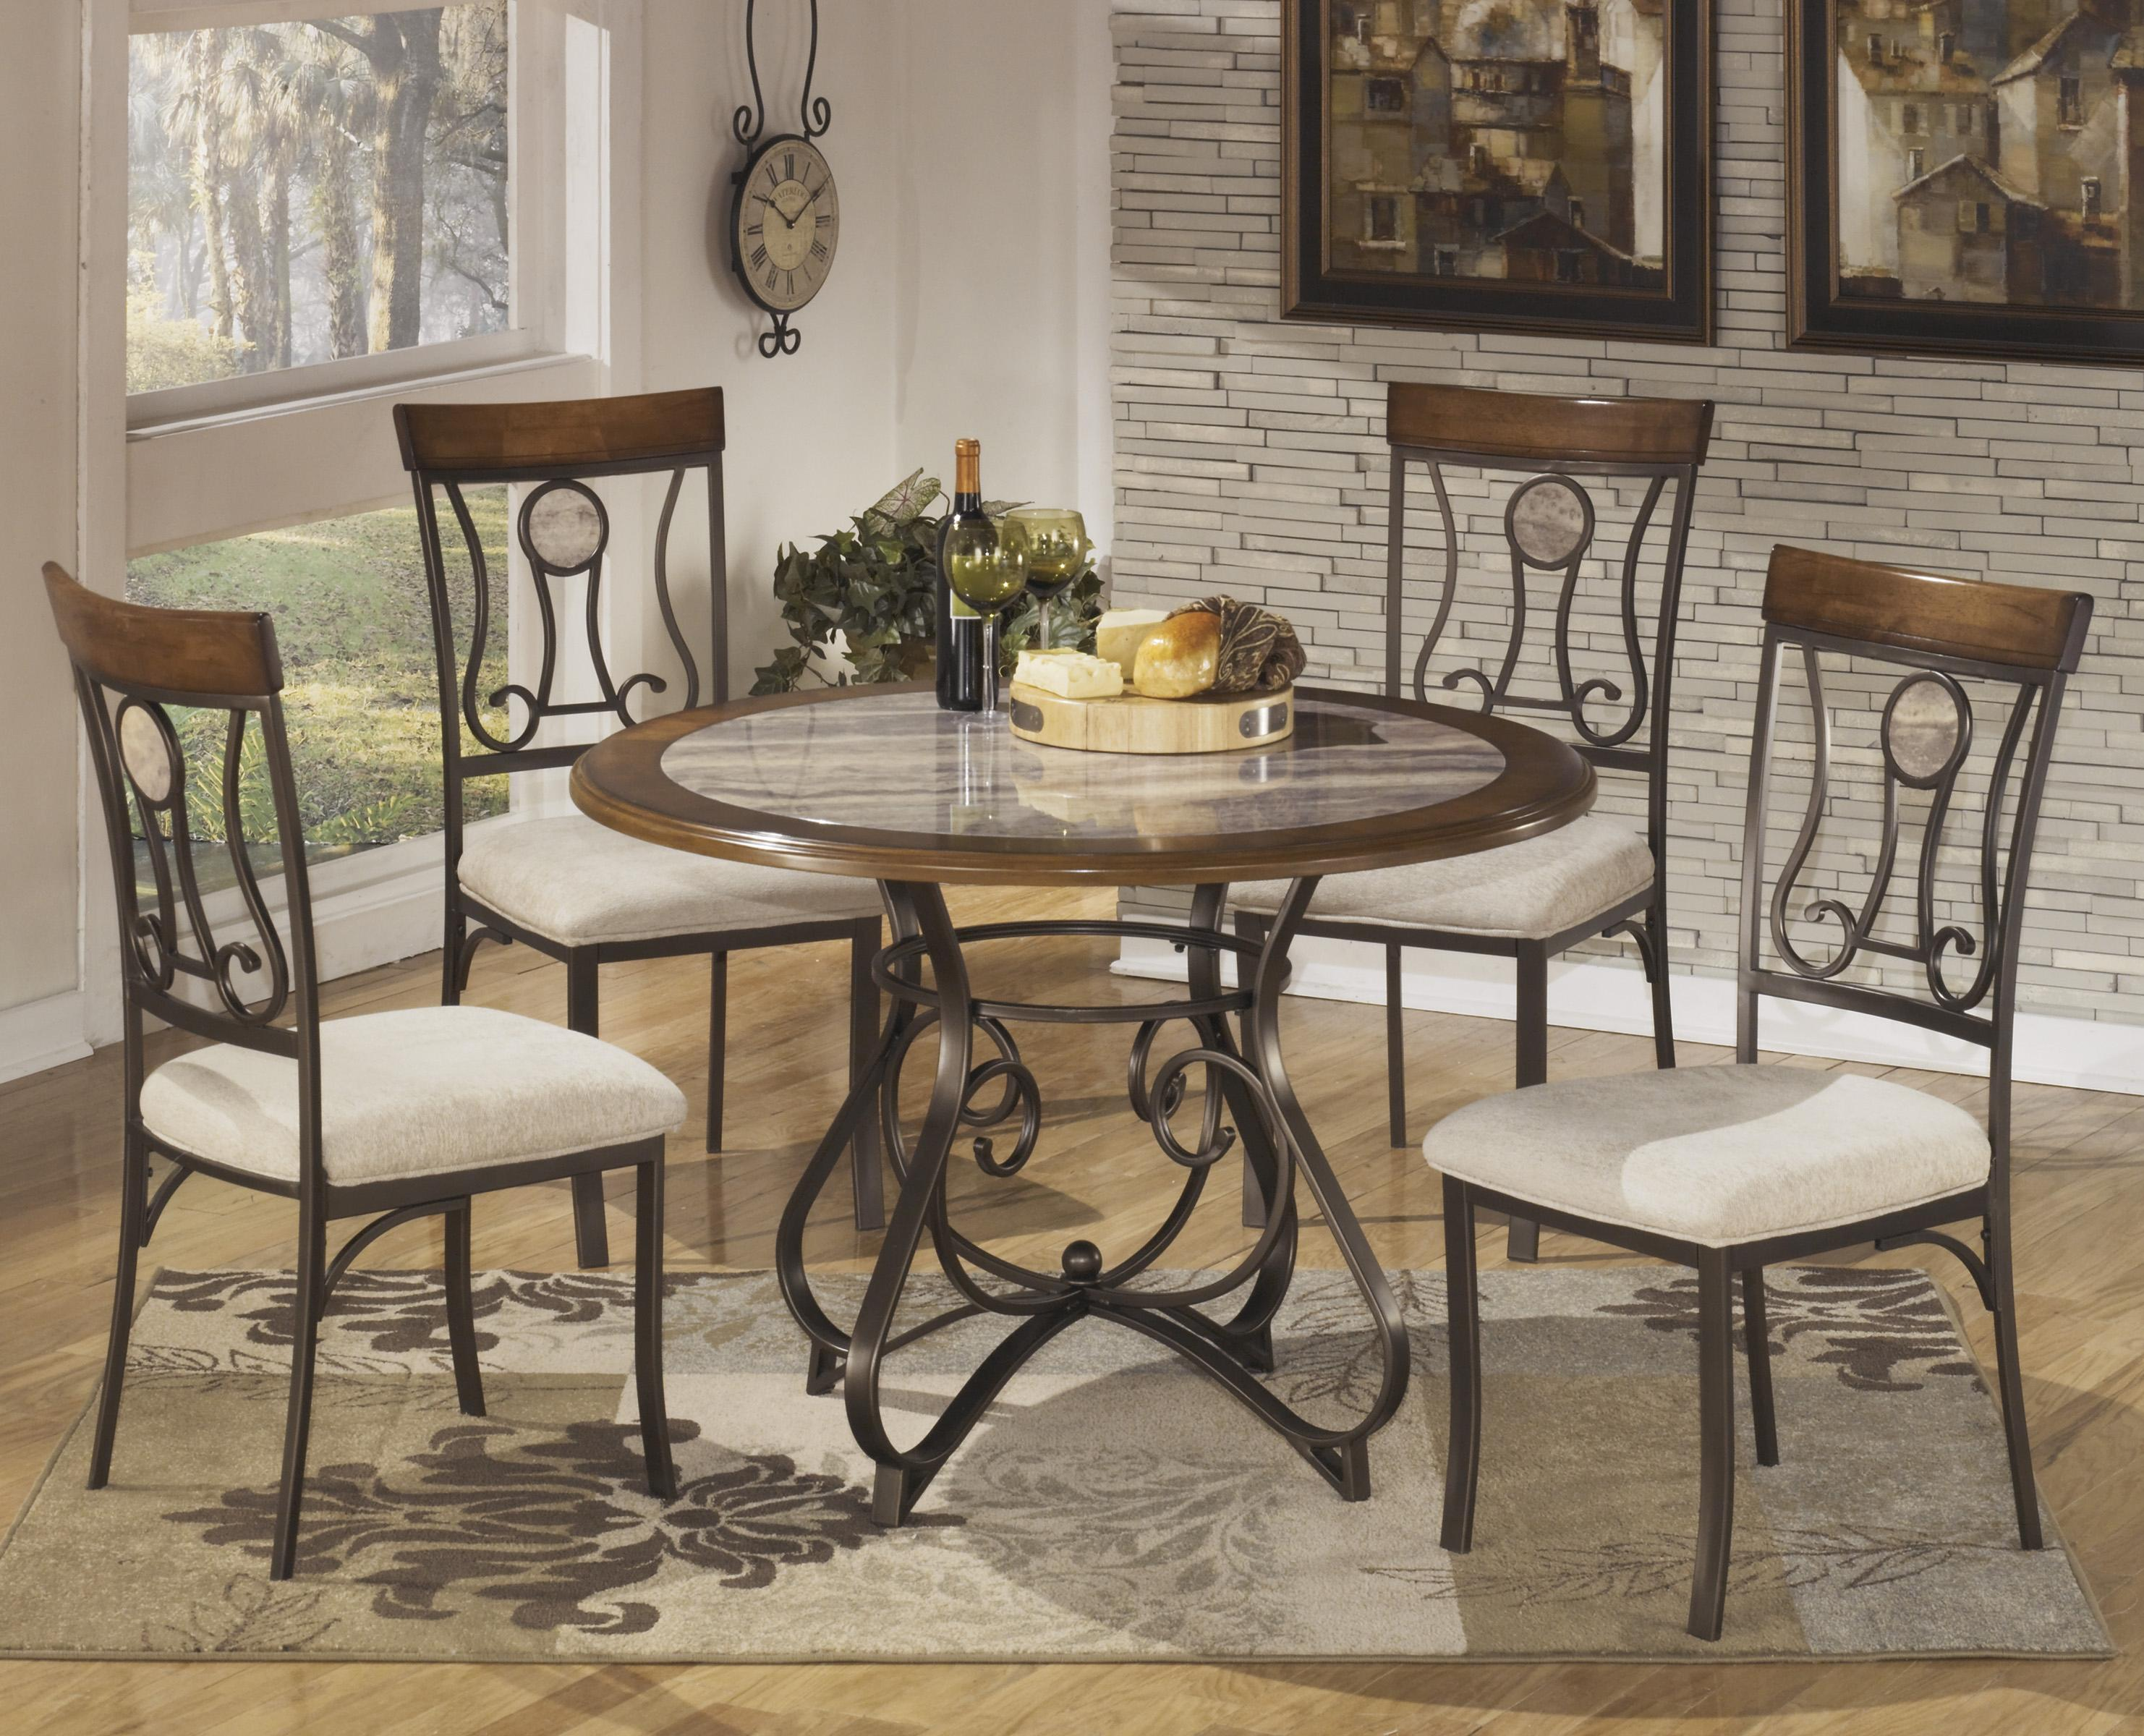 round kitchen table set Signature Design by Ashley Hopstand 5 Piece Round Dining Table Set Item Number